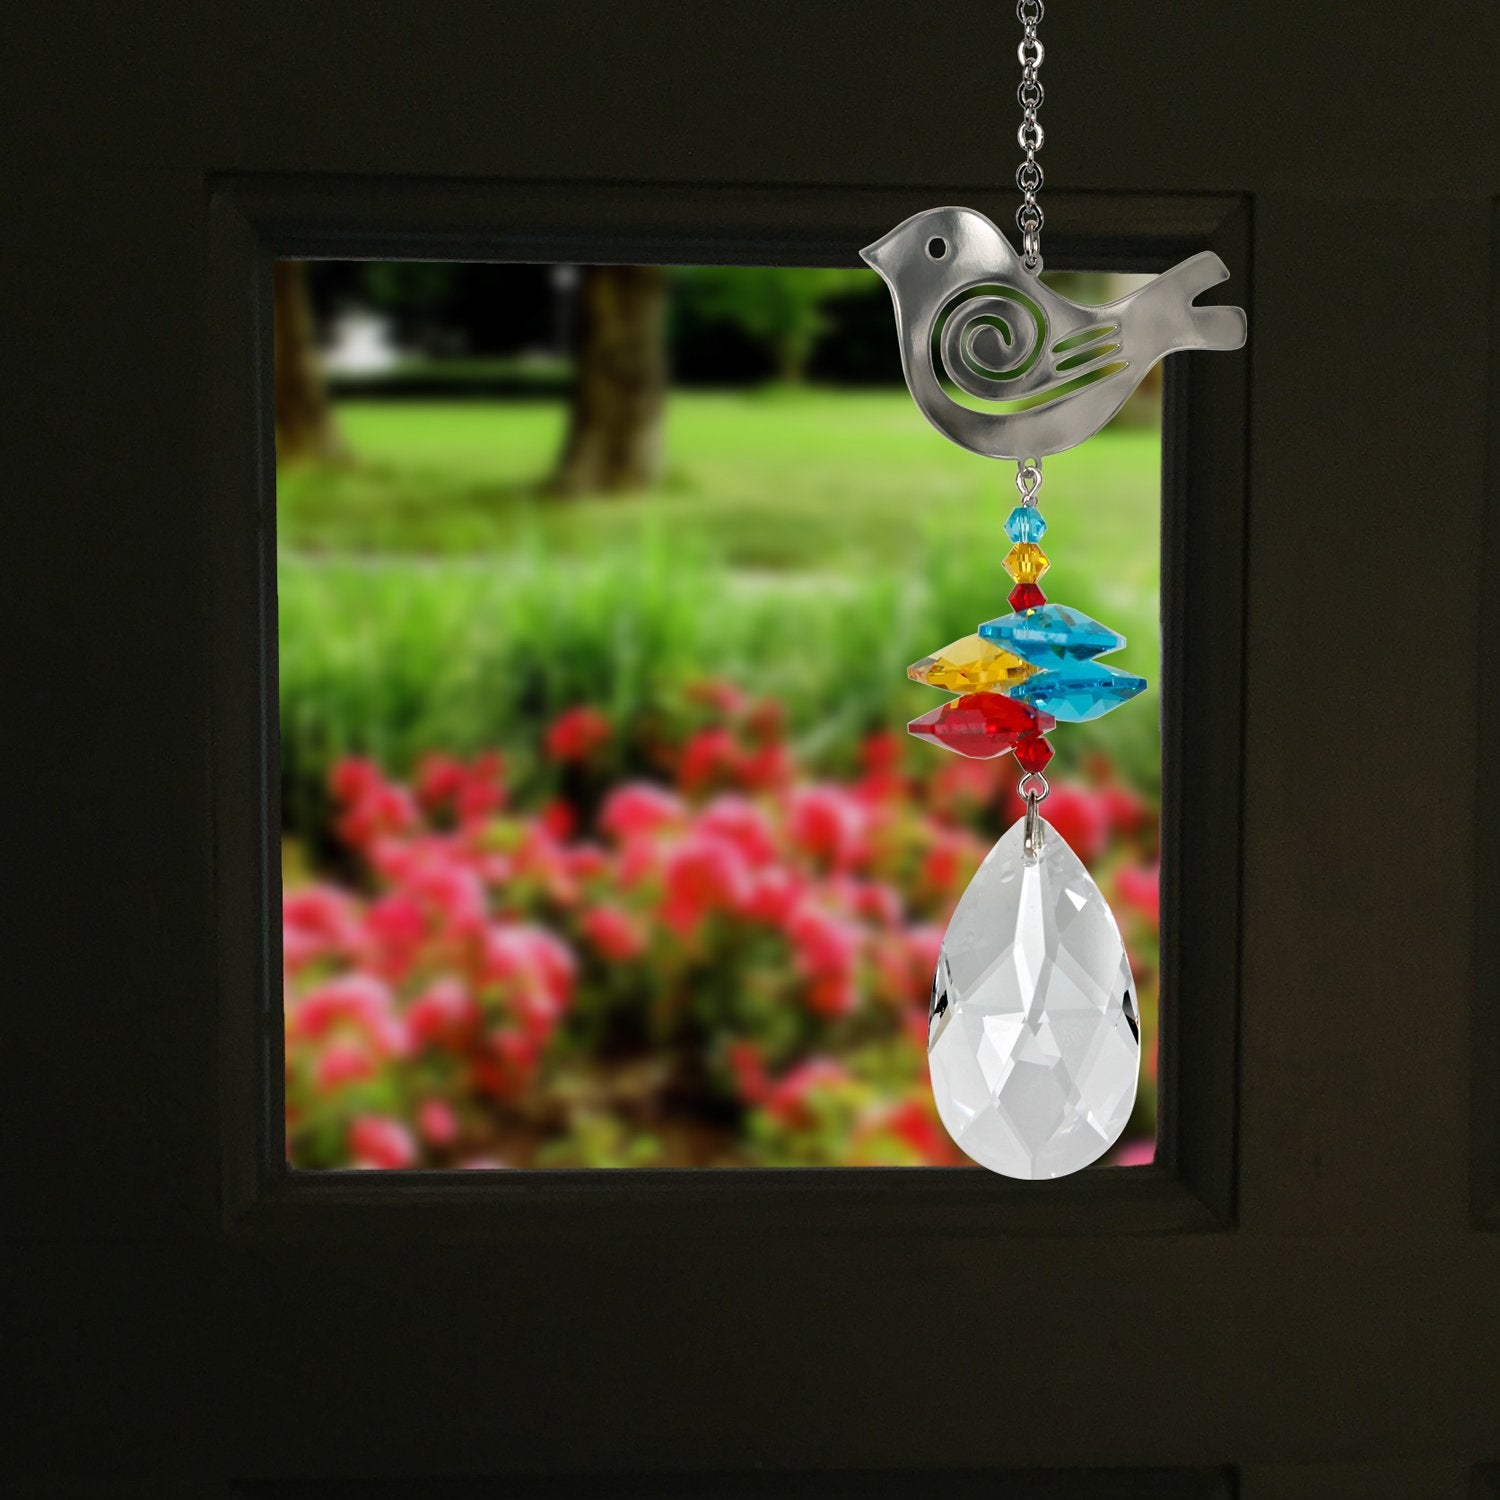 Crystal Bird Suncatcher. Material: Genuine Austrian crystals, nickel-plated brass ornament, silver finish plated brass chain